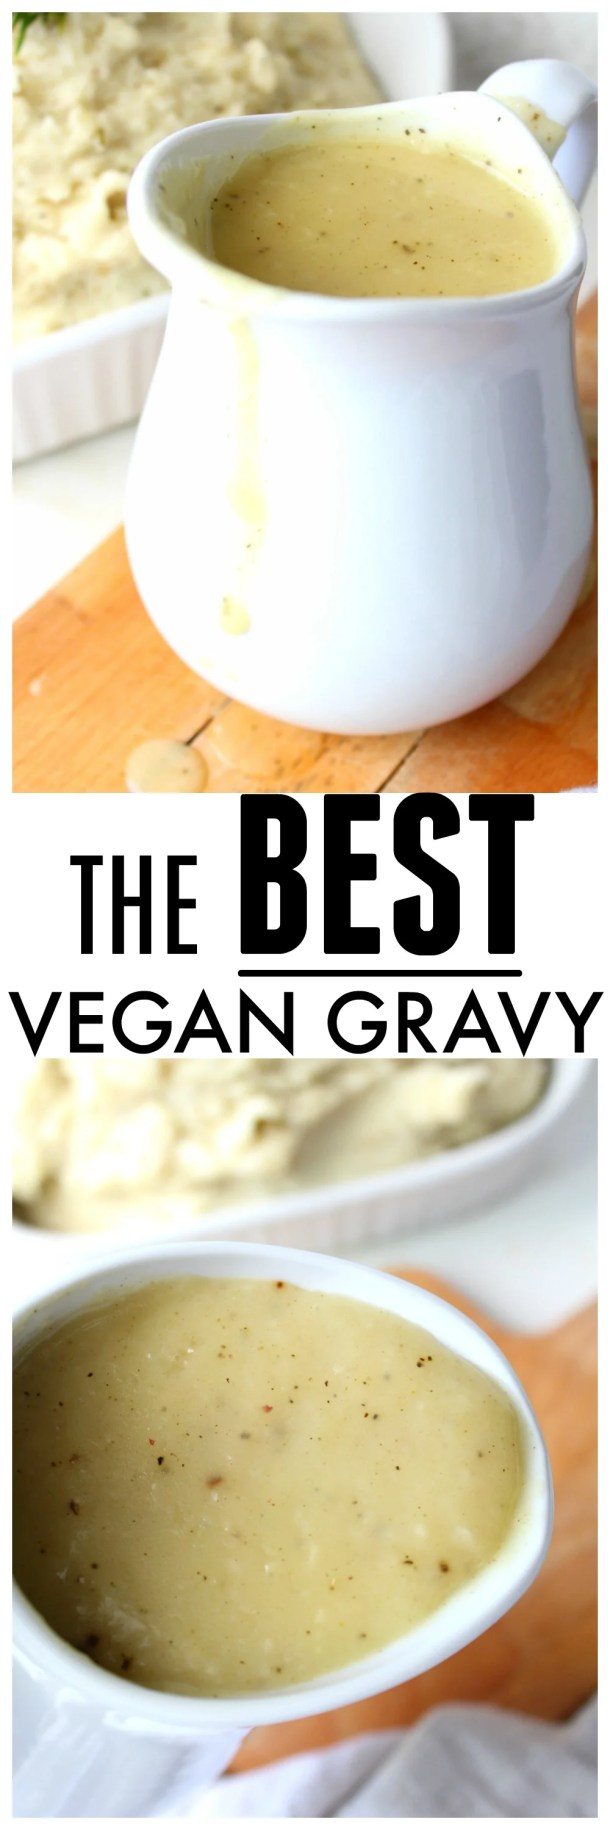 Your Thanksgiving dinner will be extra tasty with this recipe for The Best Vegan Gravy. Smooth, savory and packed full of flavor, this stuff is the real deal | ThisSavoryVegan.com #vegan #thanksgiving